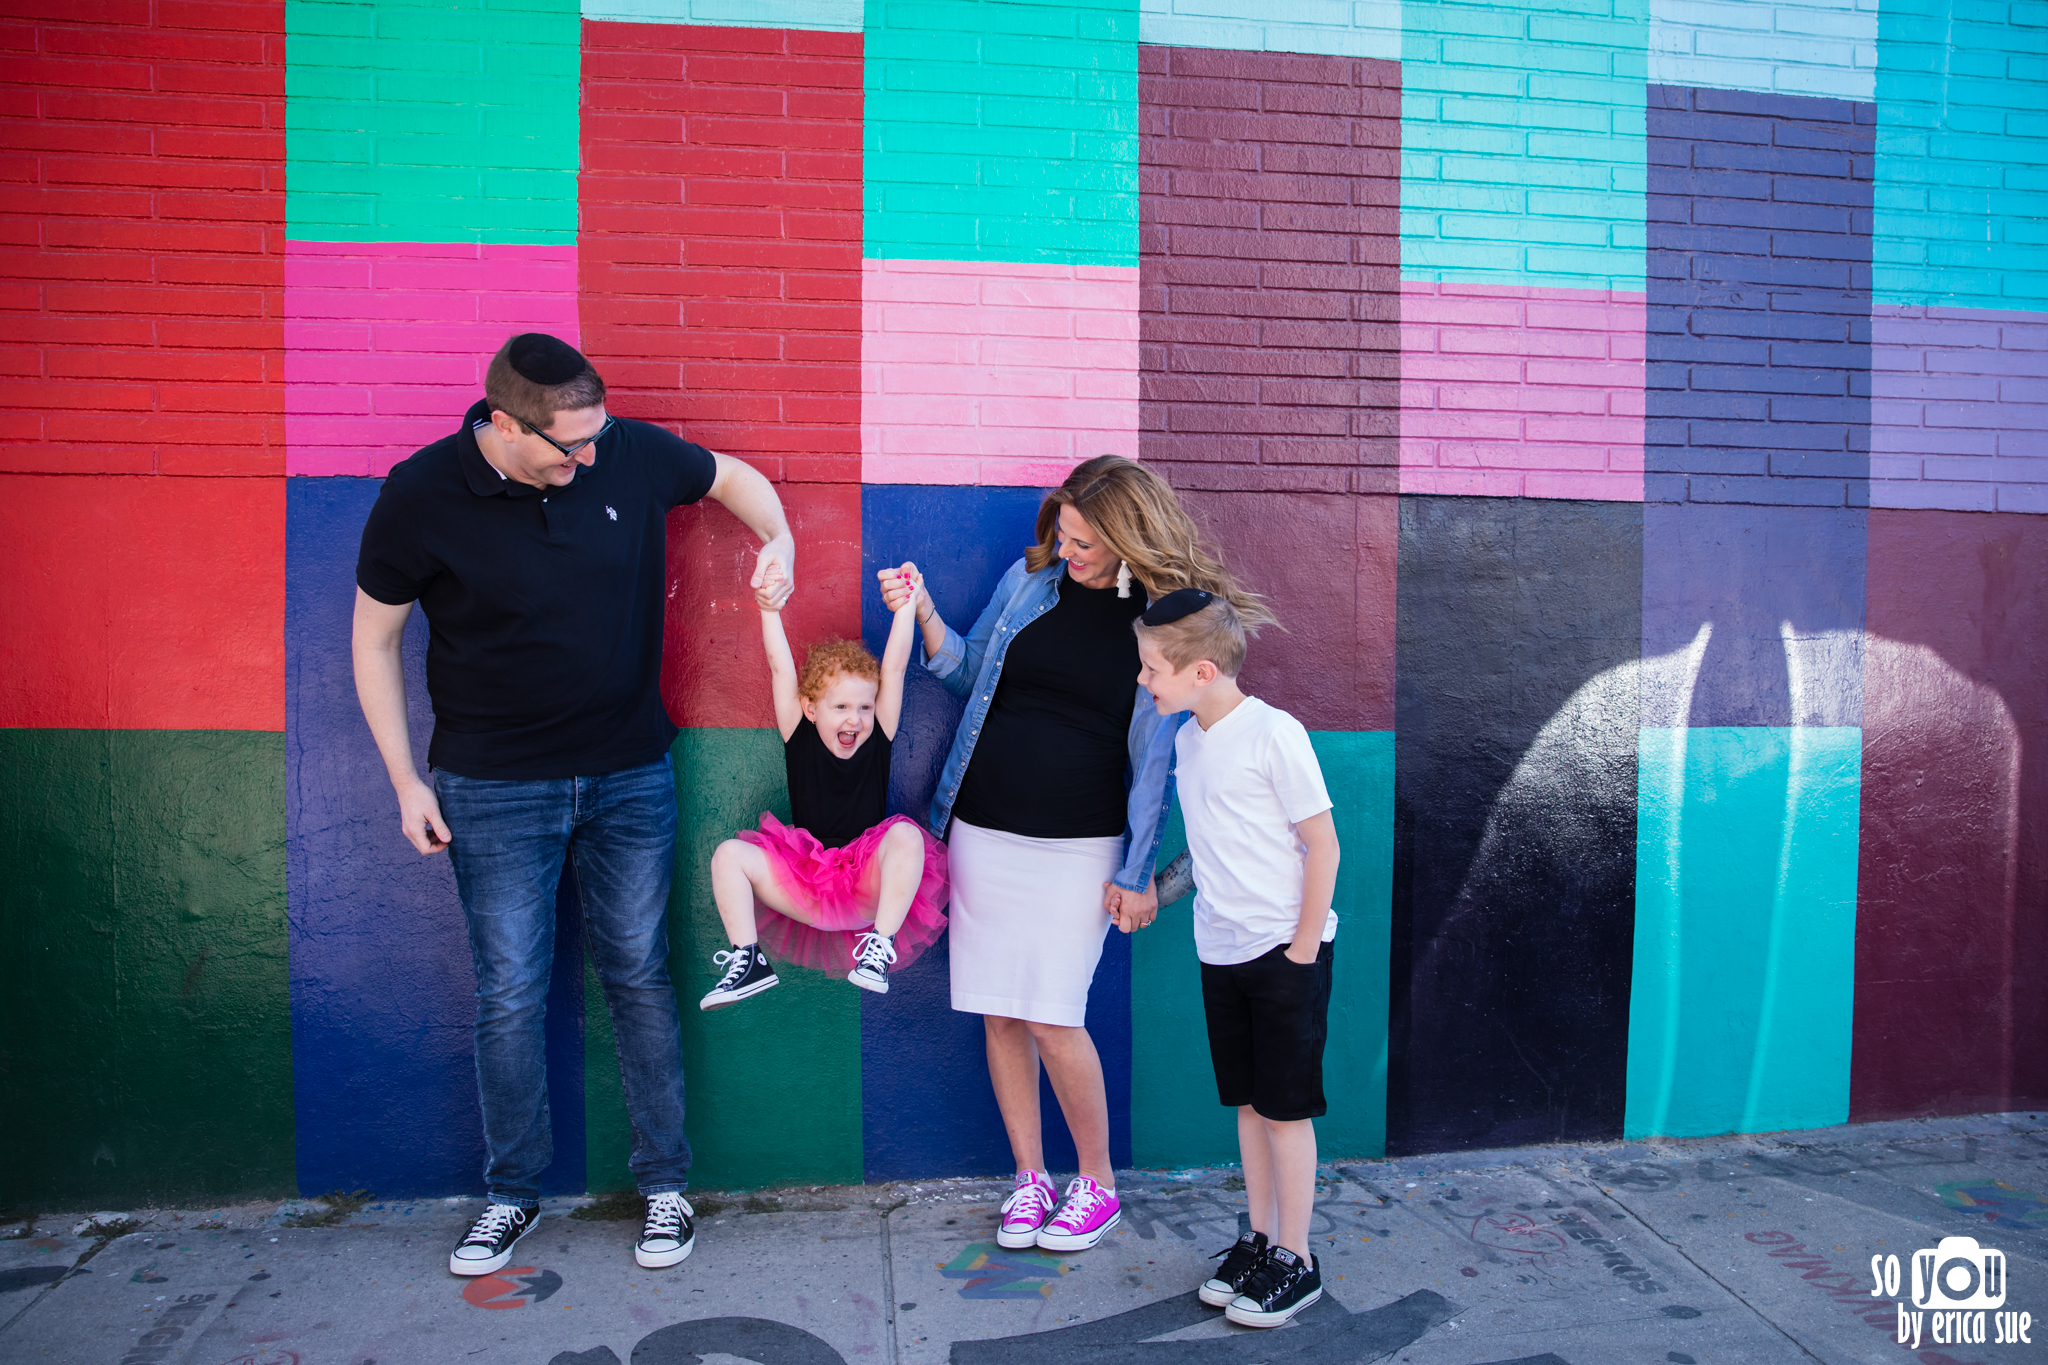 wynwood-family-photography-so-you-by-erica-sue-ft-lauderdale-davie-miami-fl-florida-2272.jpg